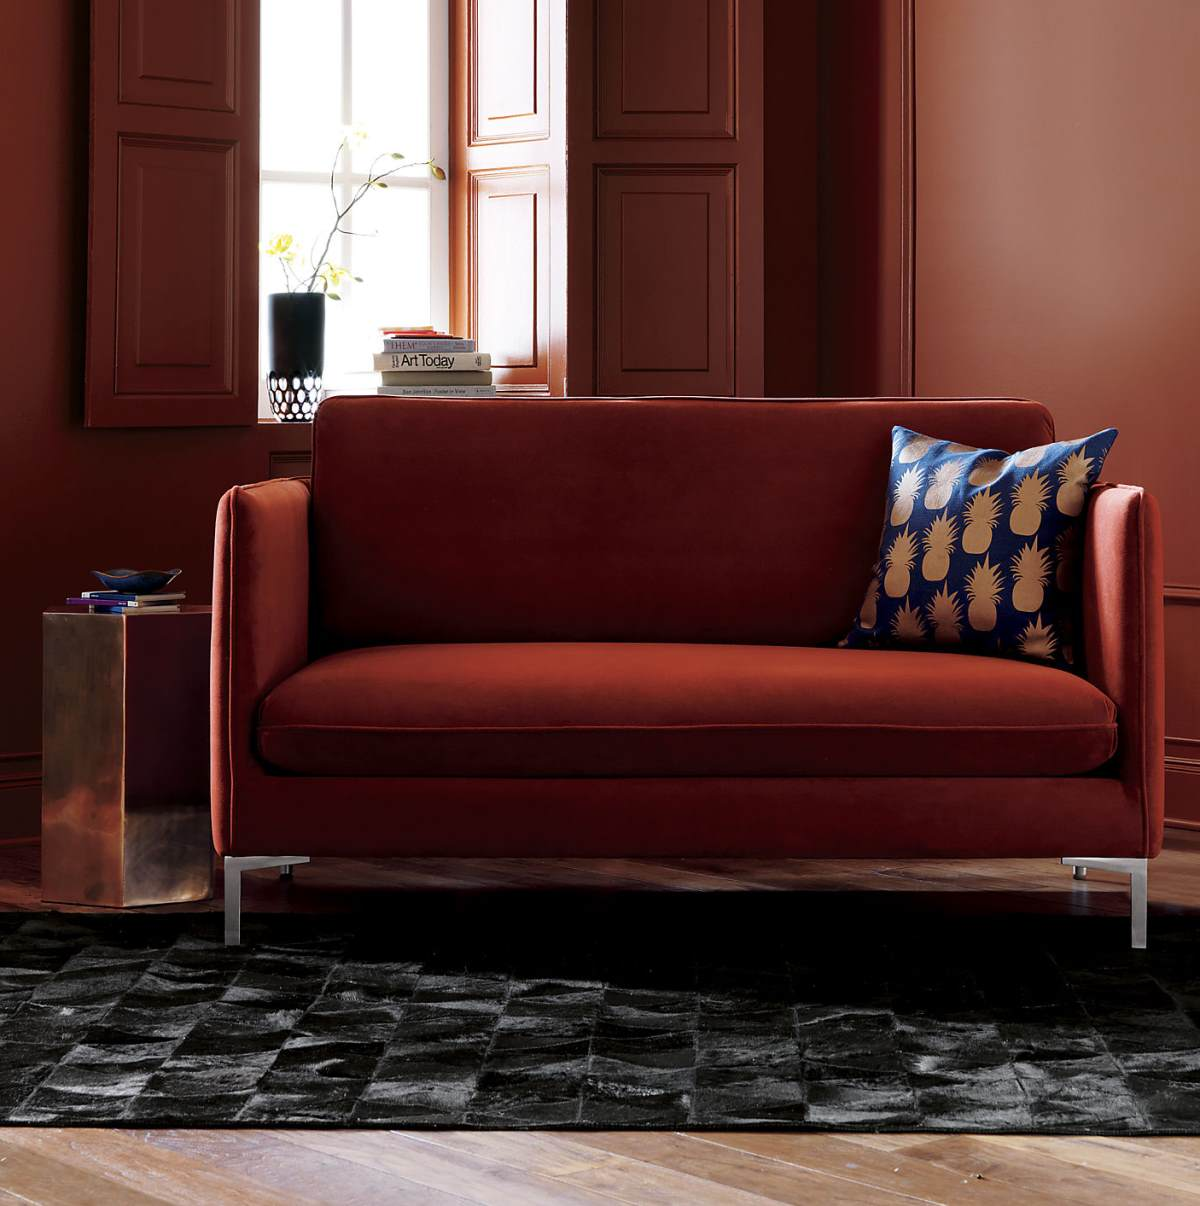 Flatiron Rouge Apartment Sofa with slim arms